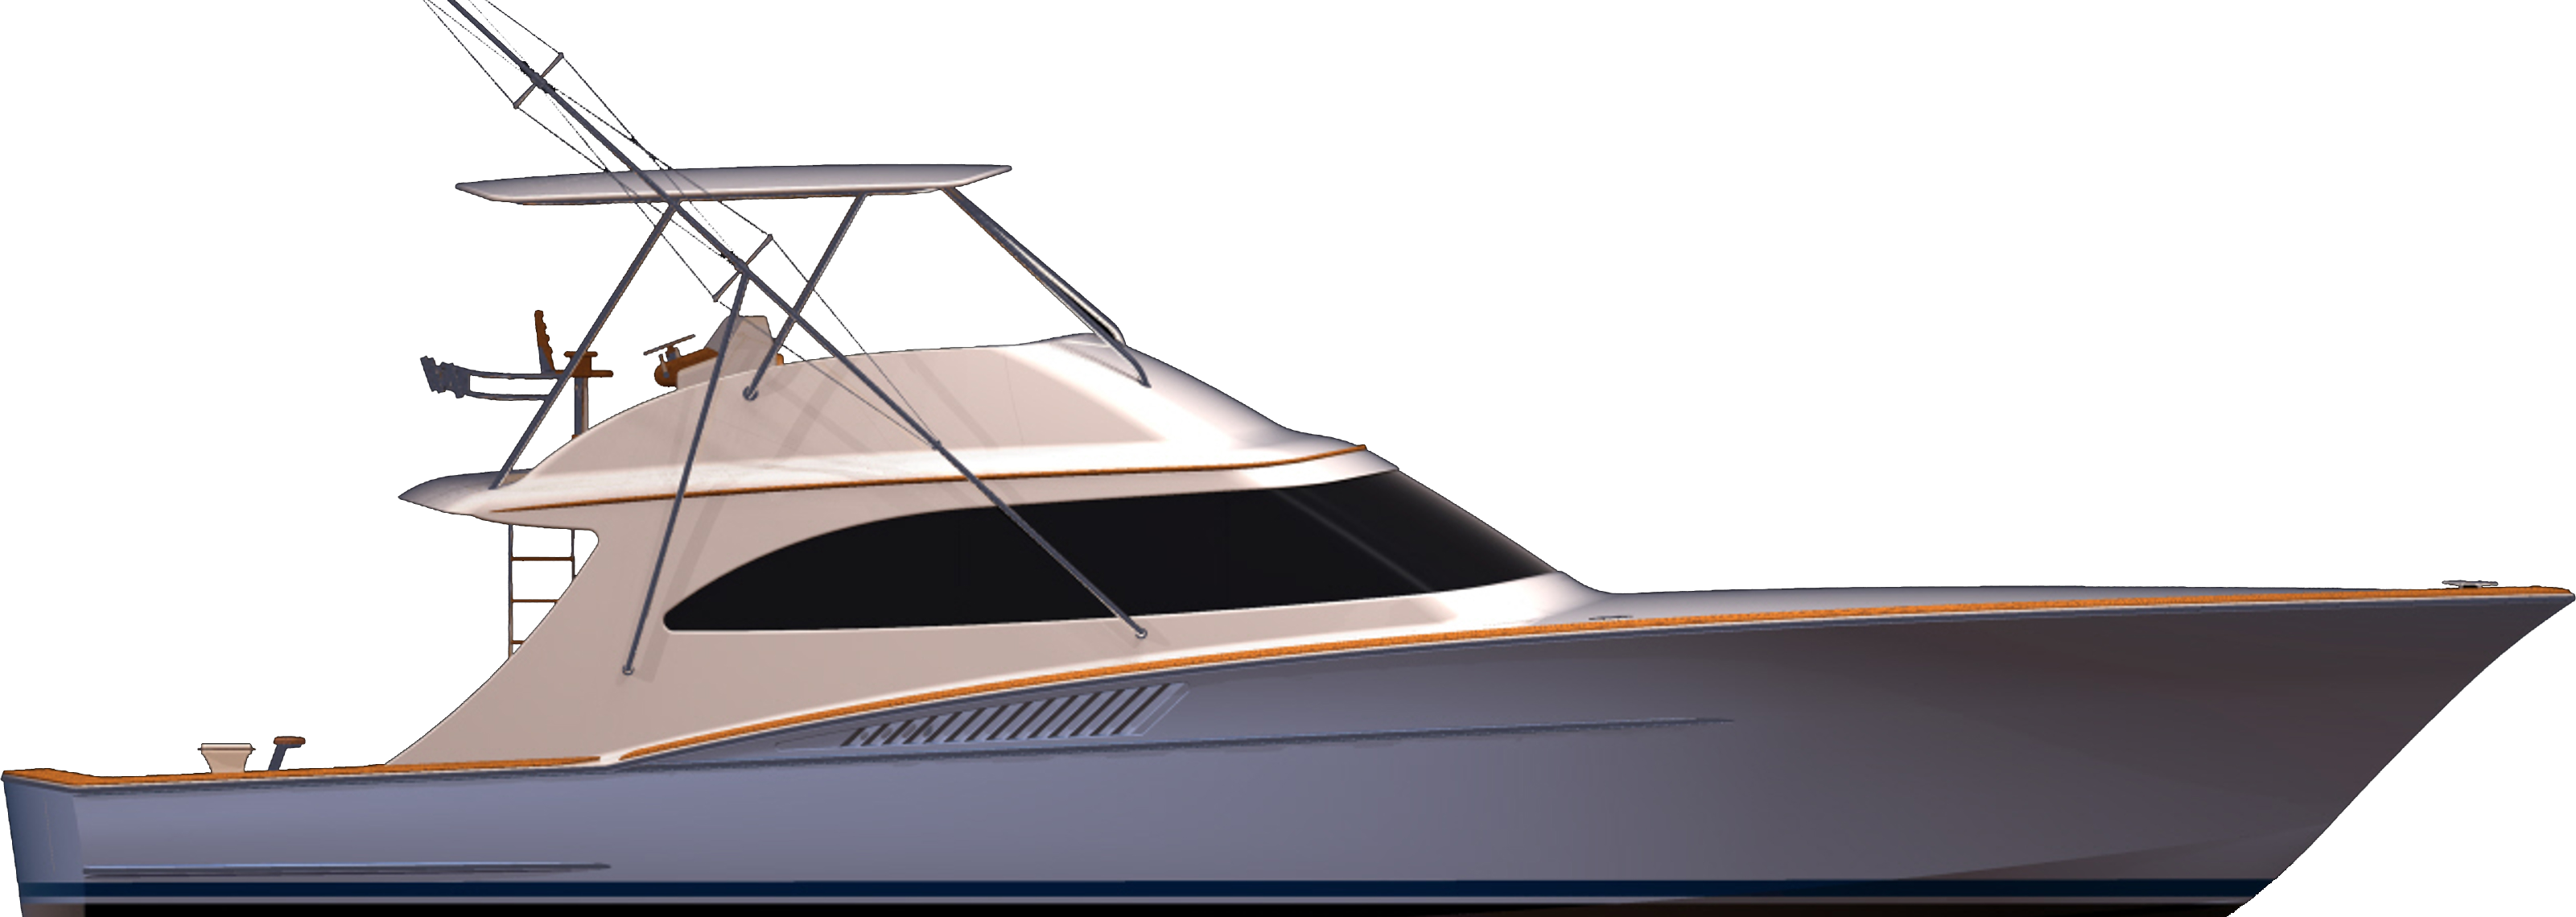 Boat transparent png pictures. Hydrasports vector png black and white